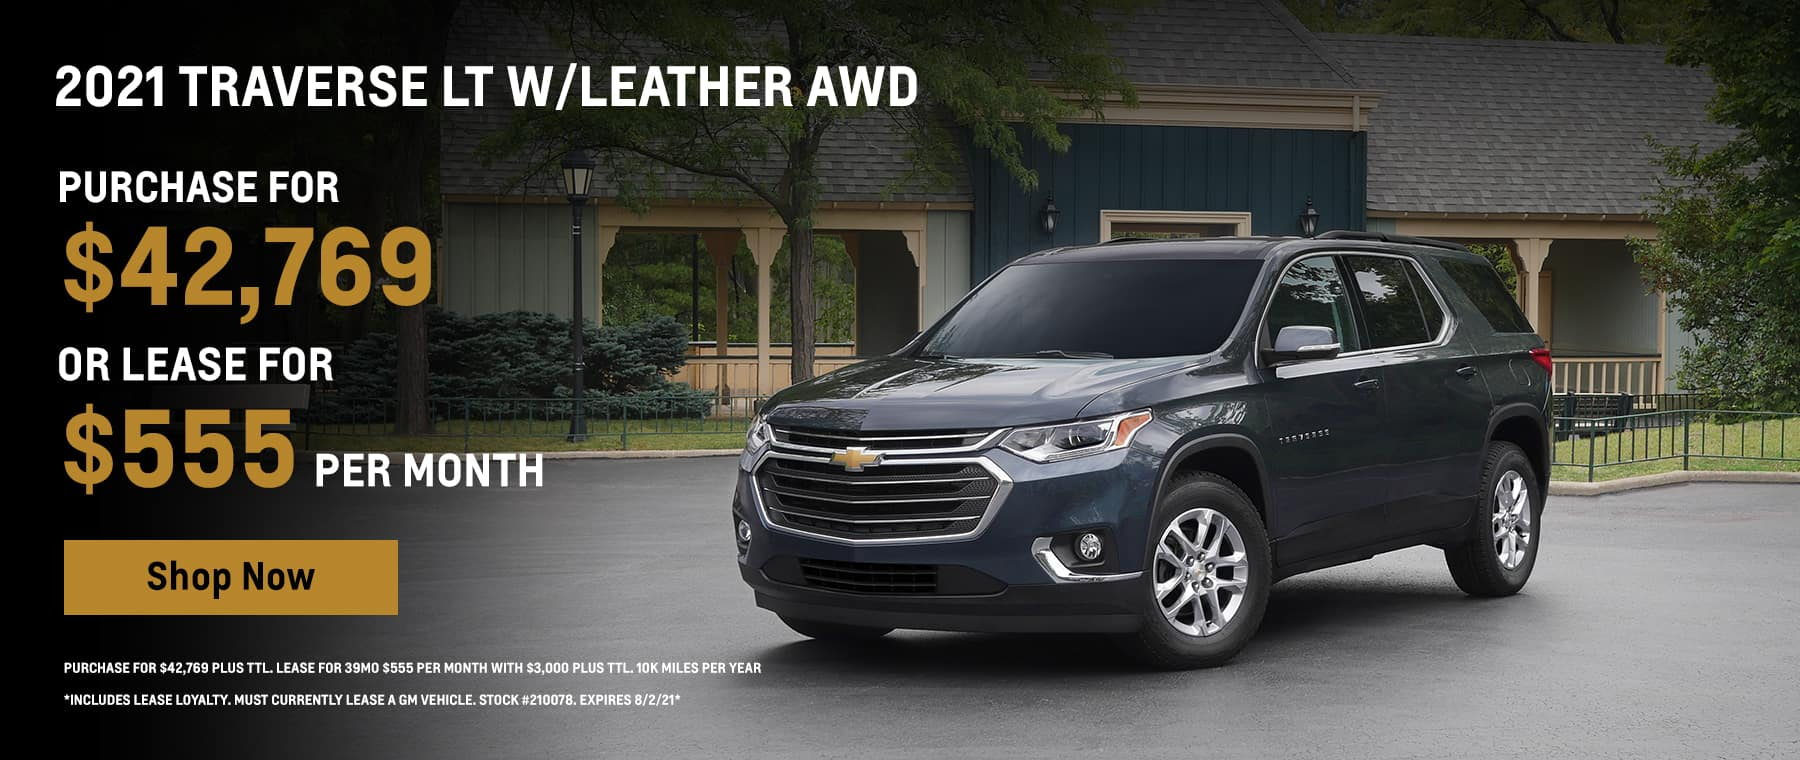 2021 Traverse LT w/Leather AWD Purchase for $42,769 or Lease for $555 per month